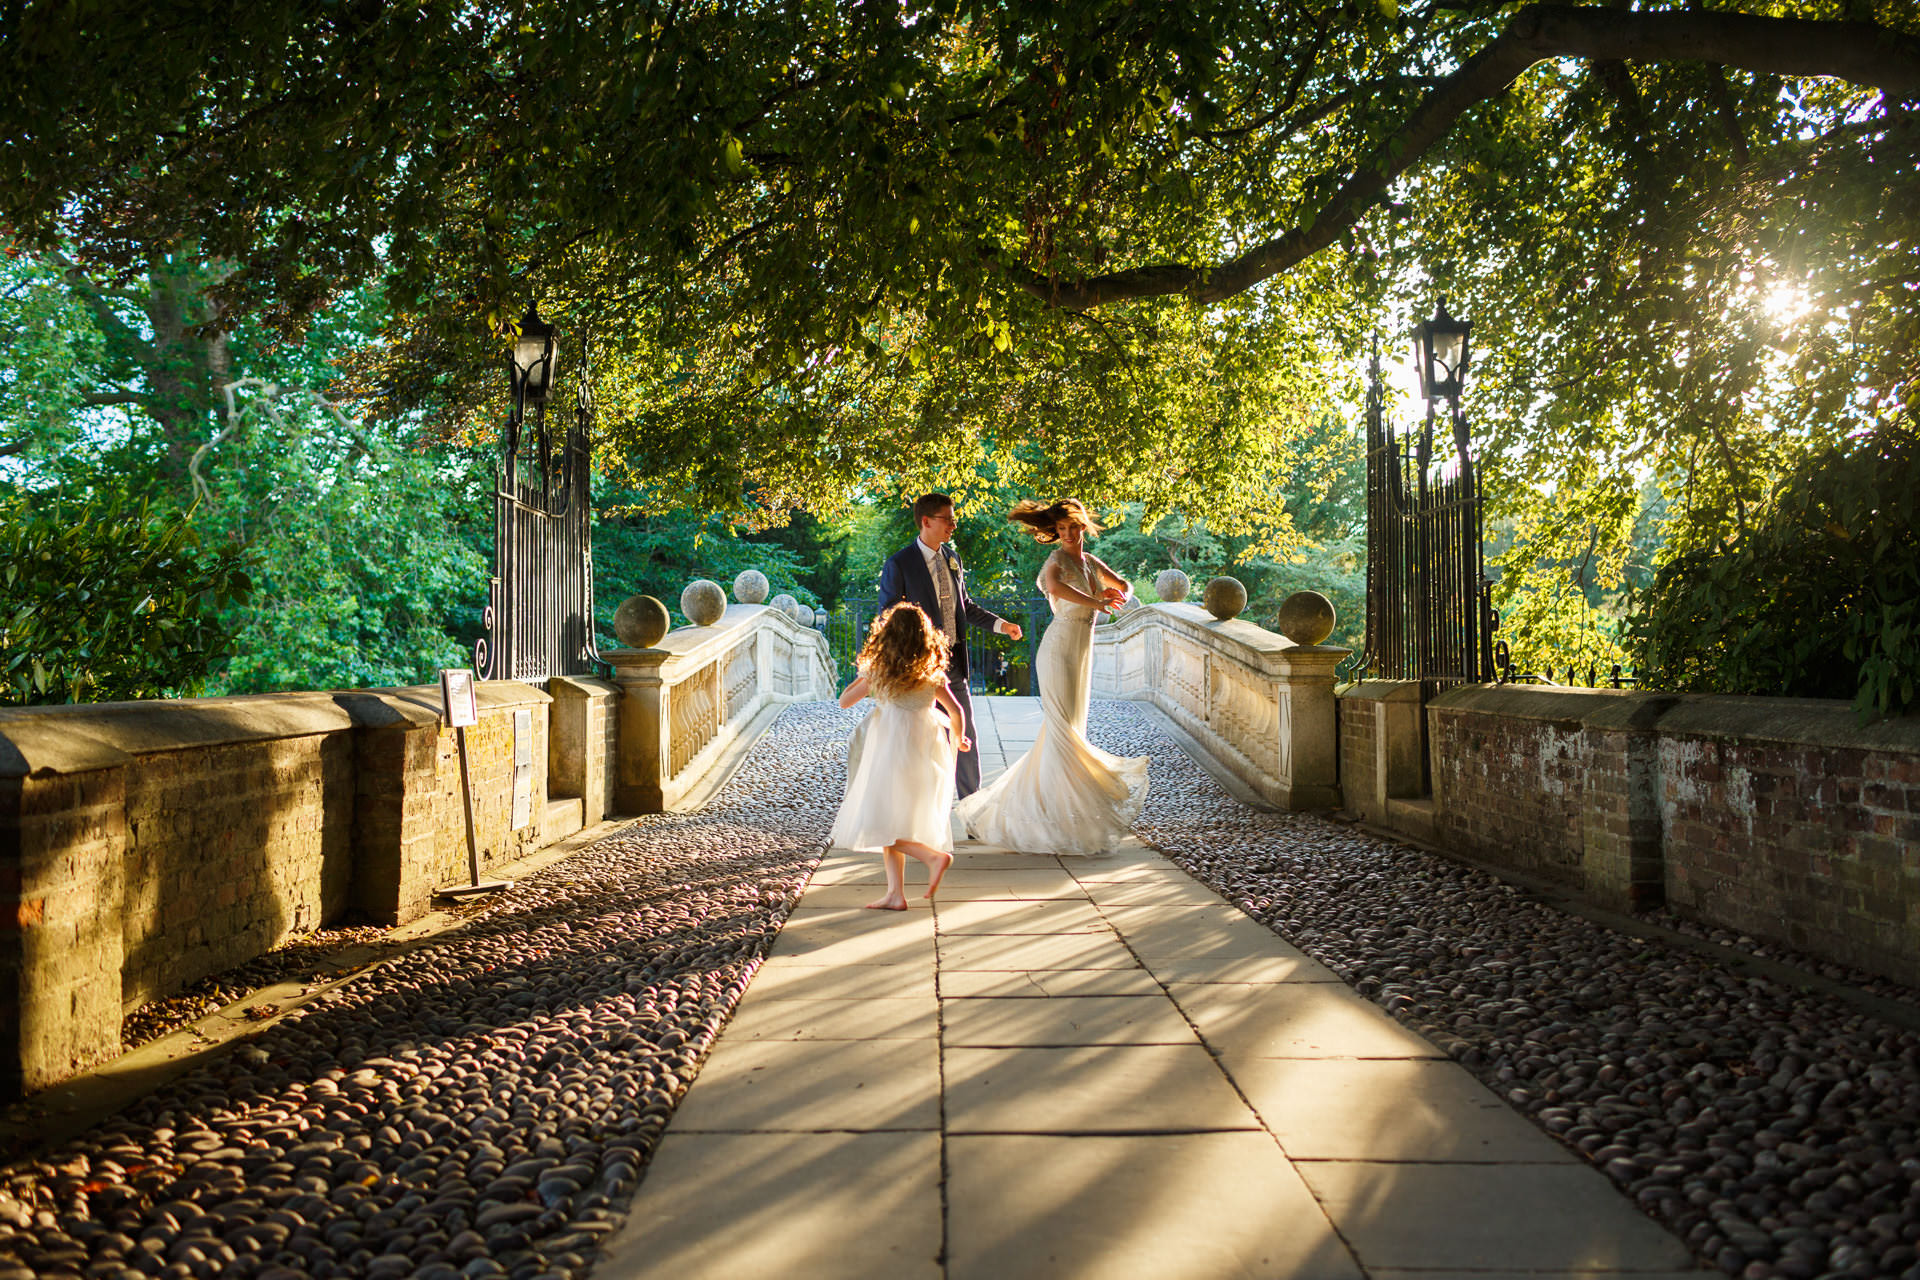 Documentary Wedding Photographer couple dancing on the bridge after their ceremony